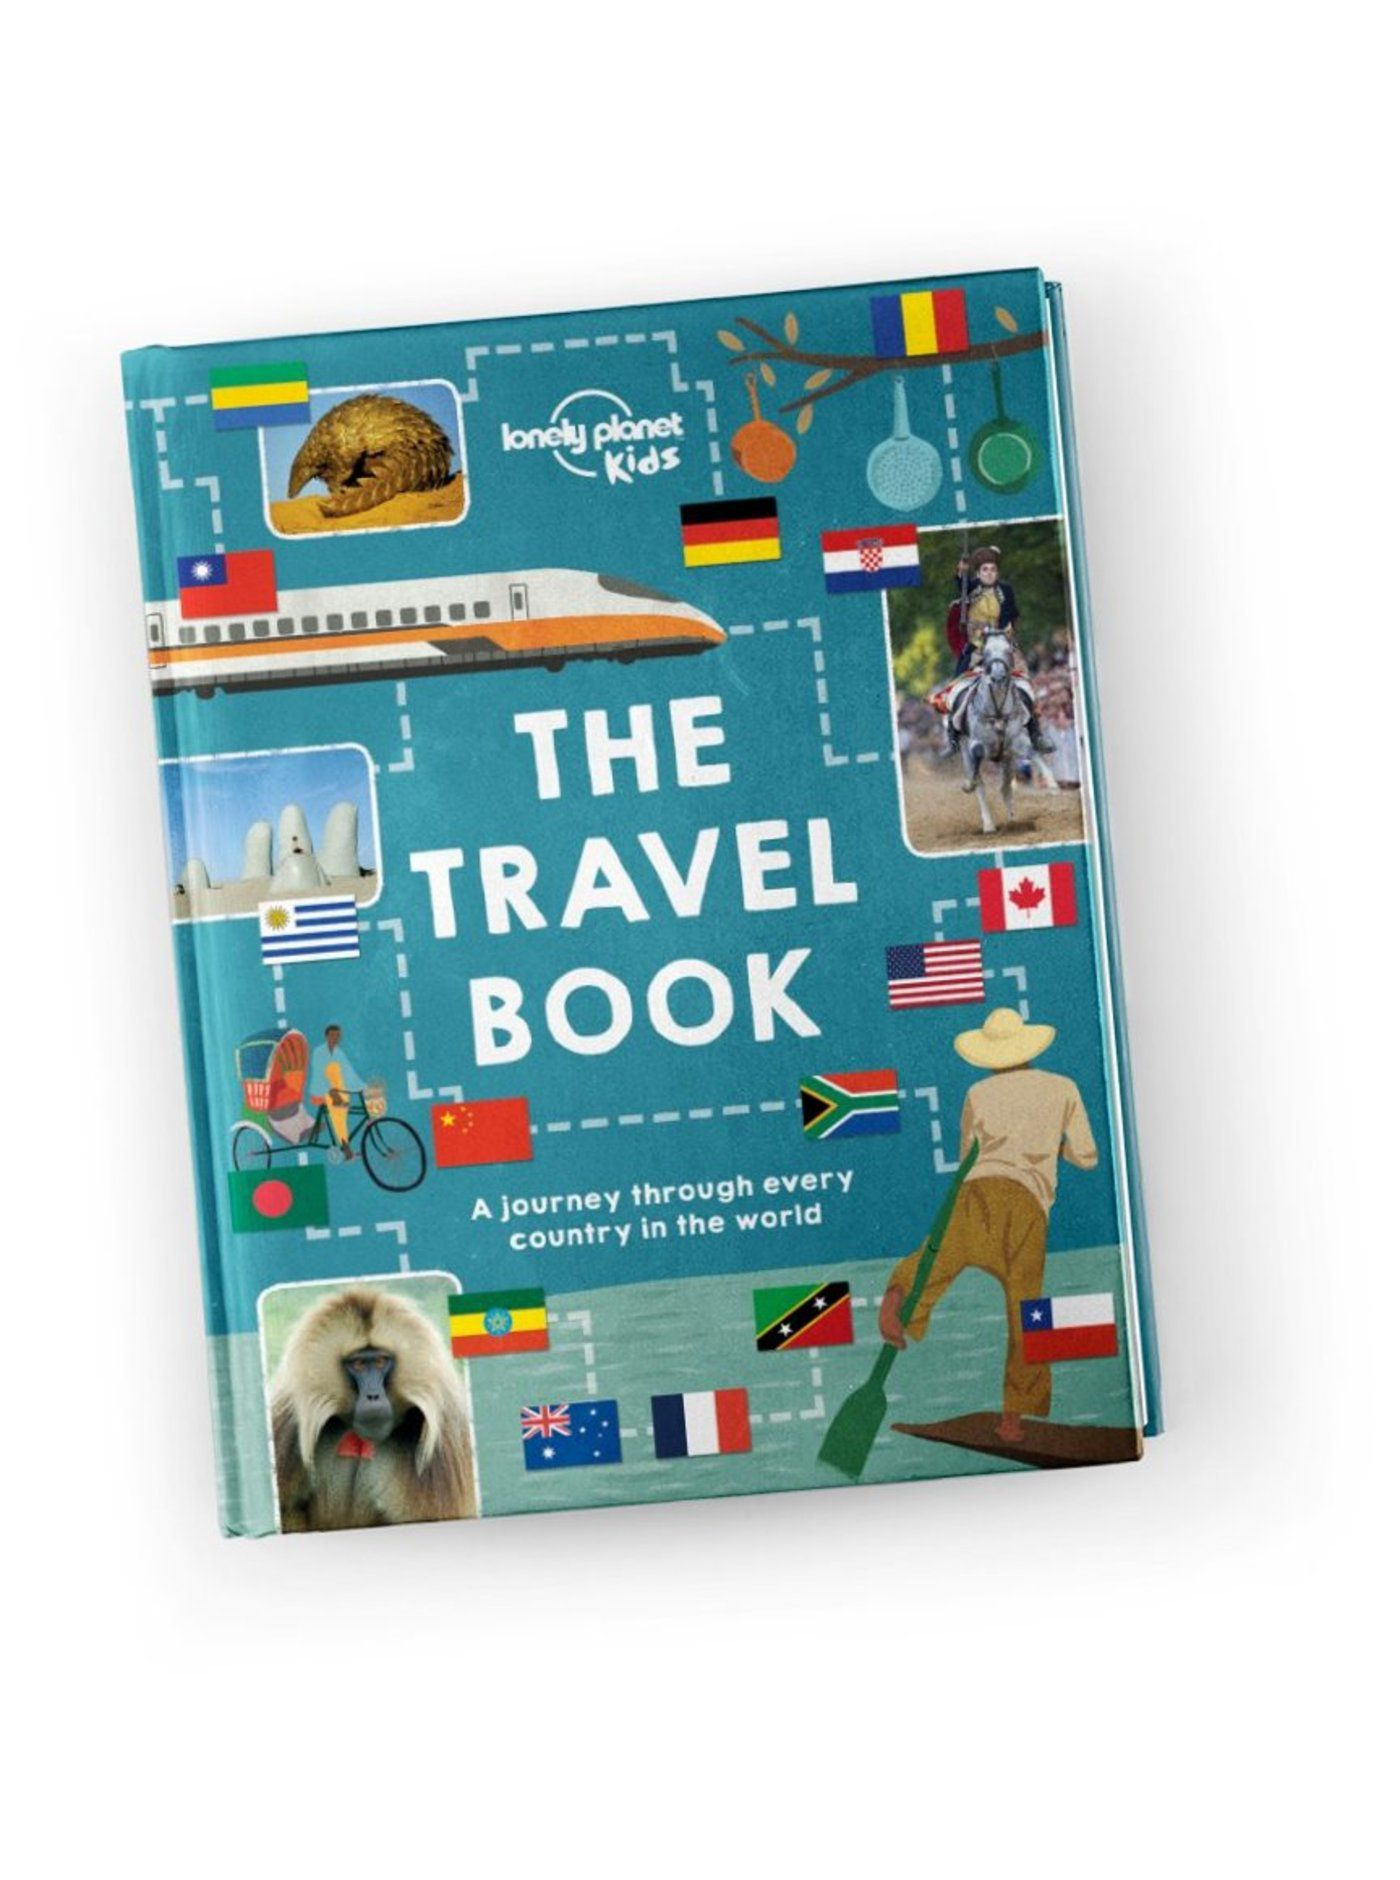 The Travel Book (North and South America edition)